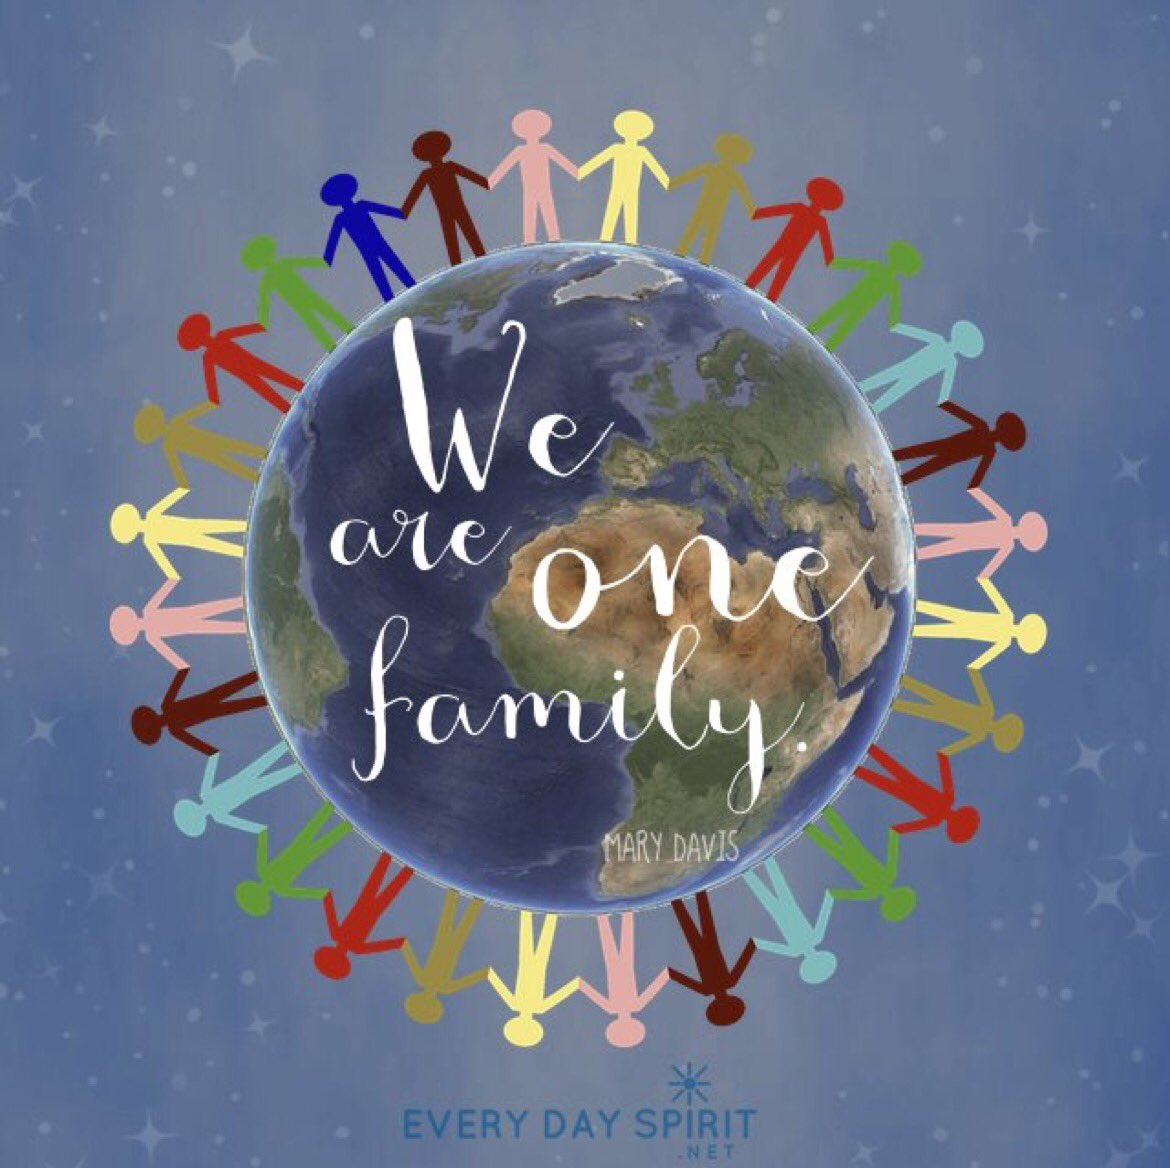 One #world One #love One #joy One #universe One #peace One #family!  #JoyTrain >         #MentalHealth #Mindfulness #GoldenHearts #IAM #Quote #ChooseLove #kjoys00 #TuesdayMorning #TuesdayThoughts #TuesdayMotivation RT@EveryDaySpirit1